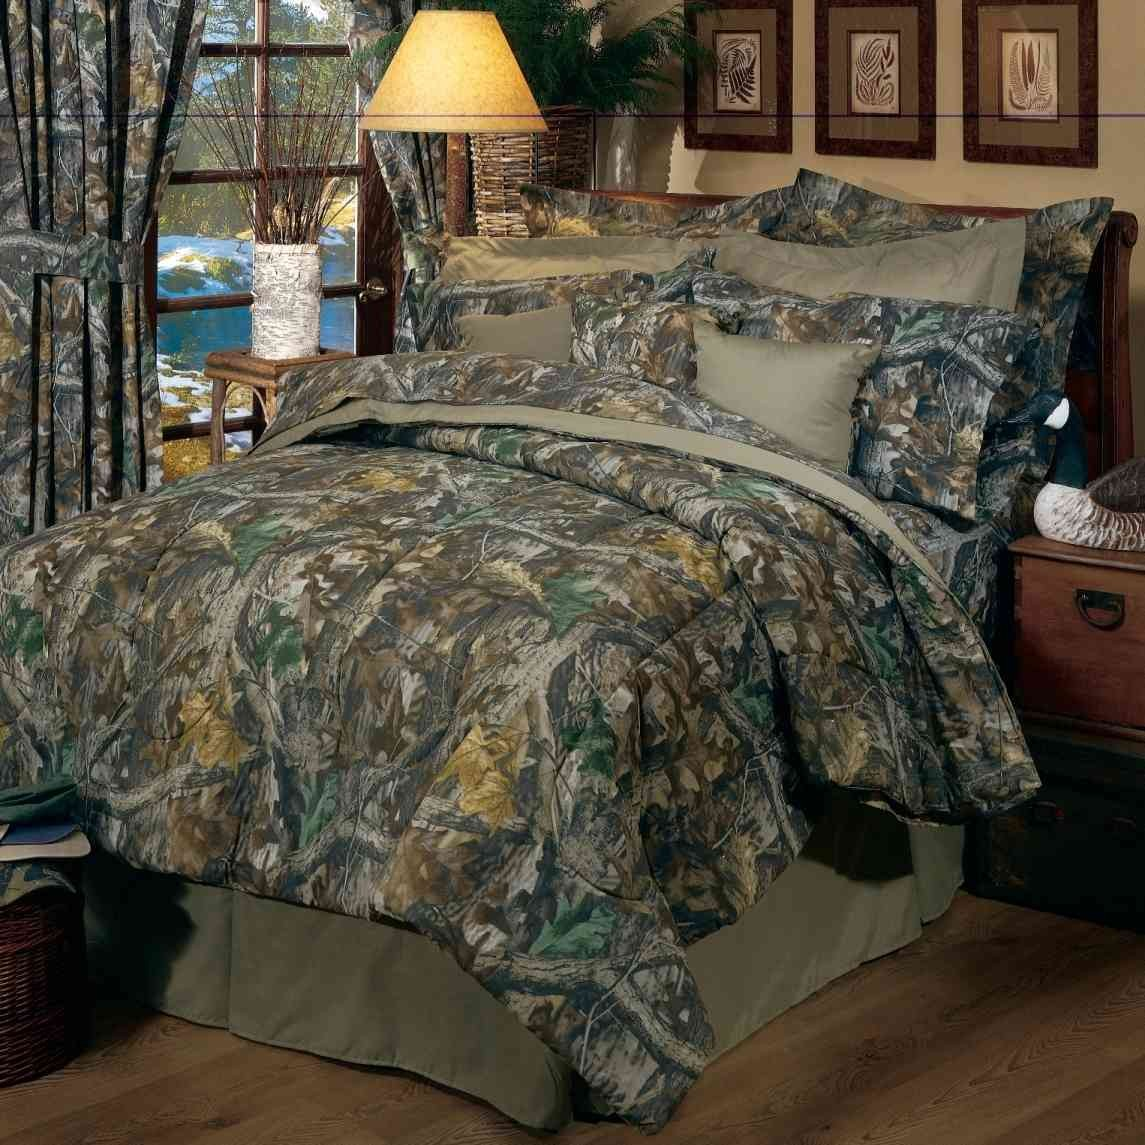 Realtree Camo Wallpaper Realtree Camo Wallpaper Real Tree Camouflage 1145x1145